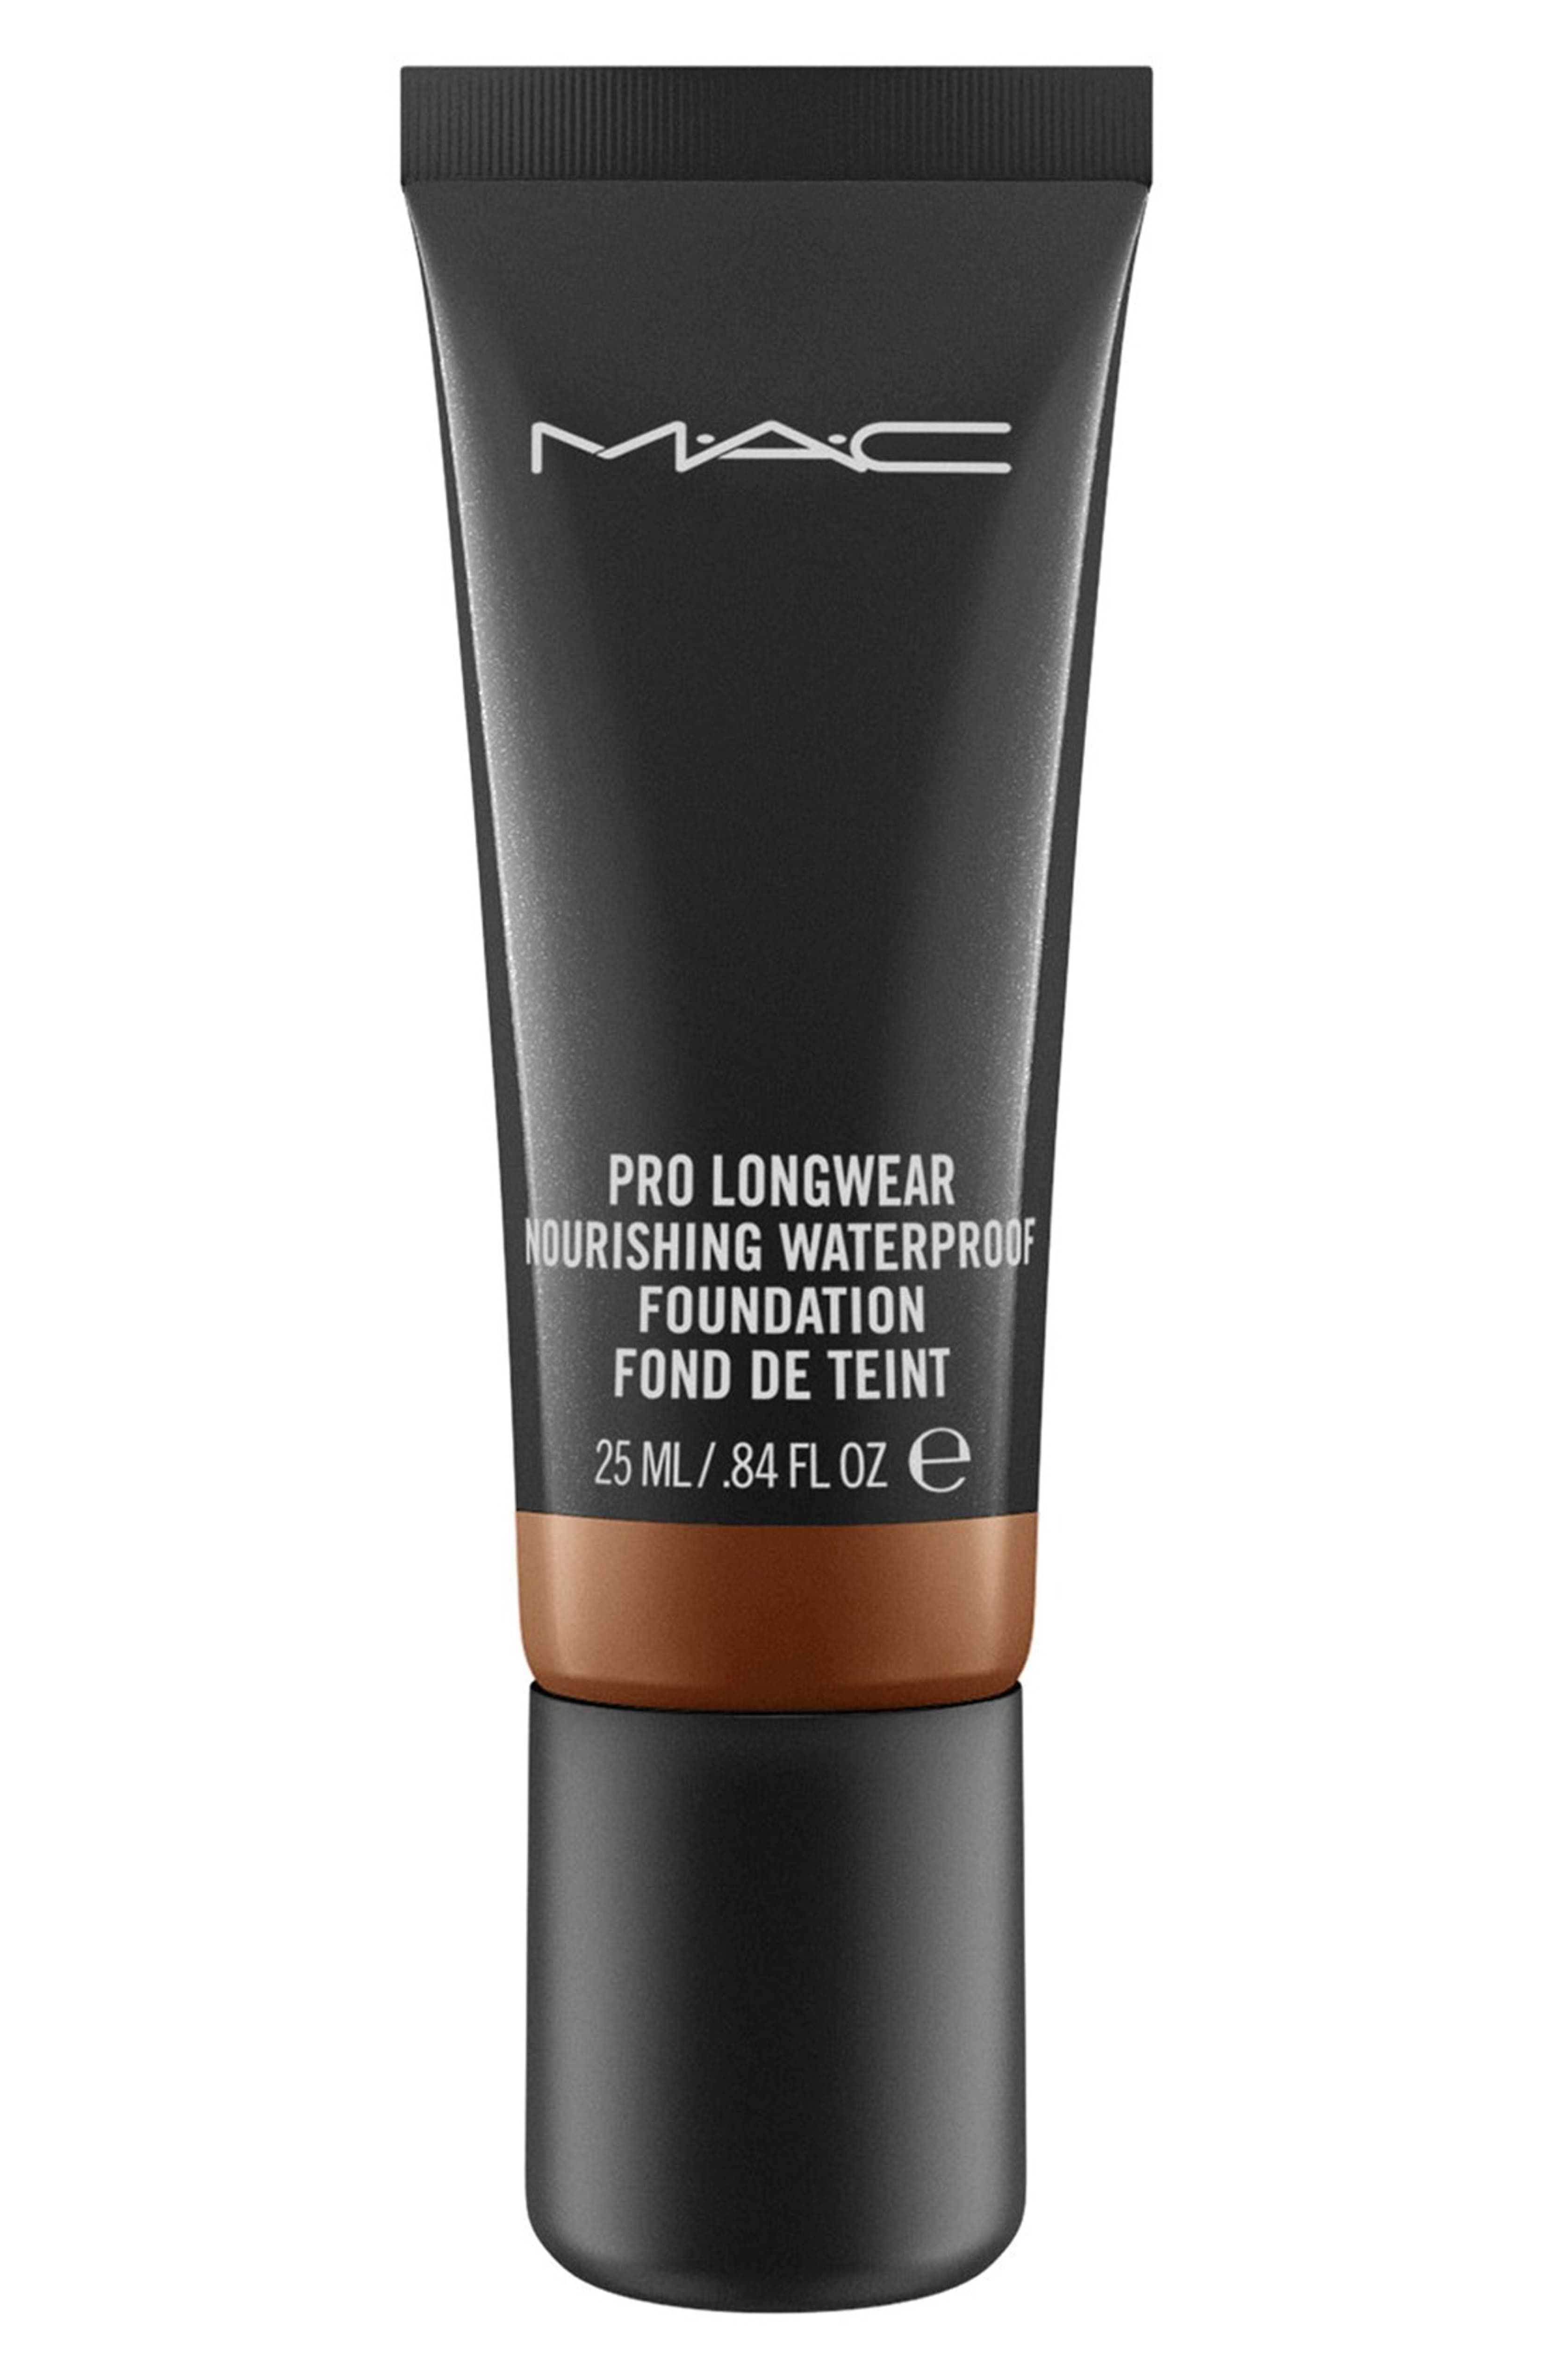 For Longwear Pro Longwear Nourishing Waterproof Foundation MAC $36.00 SHOP NOW Even on the longest of days, this full coverage foundation leaves skin matte with no touch-ups required. The tube may seem tiny, but trust–a little goes a long way.